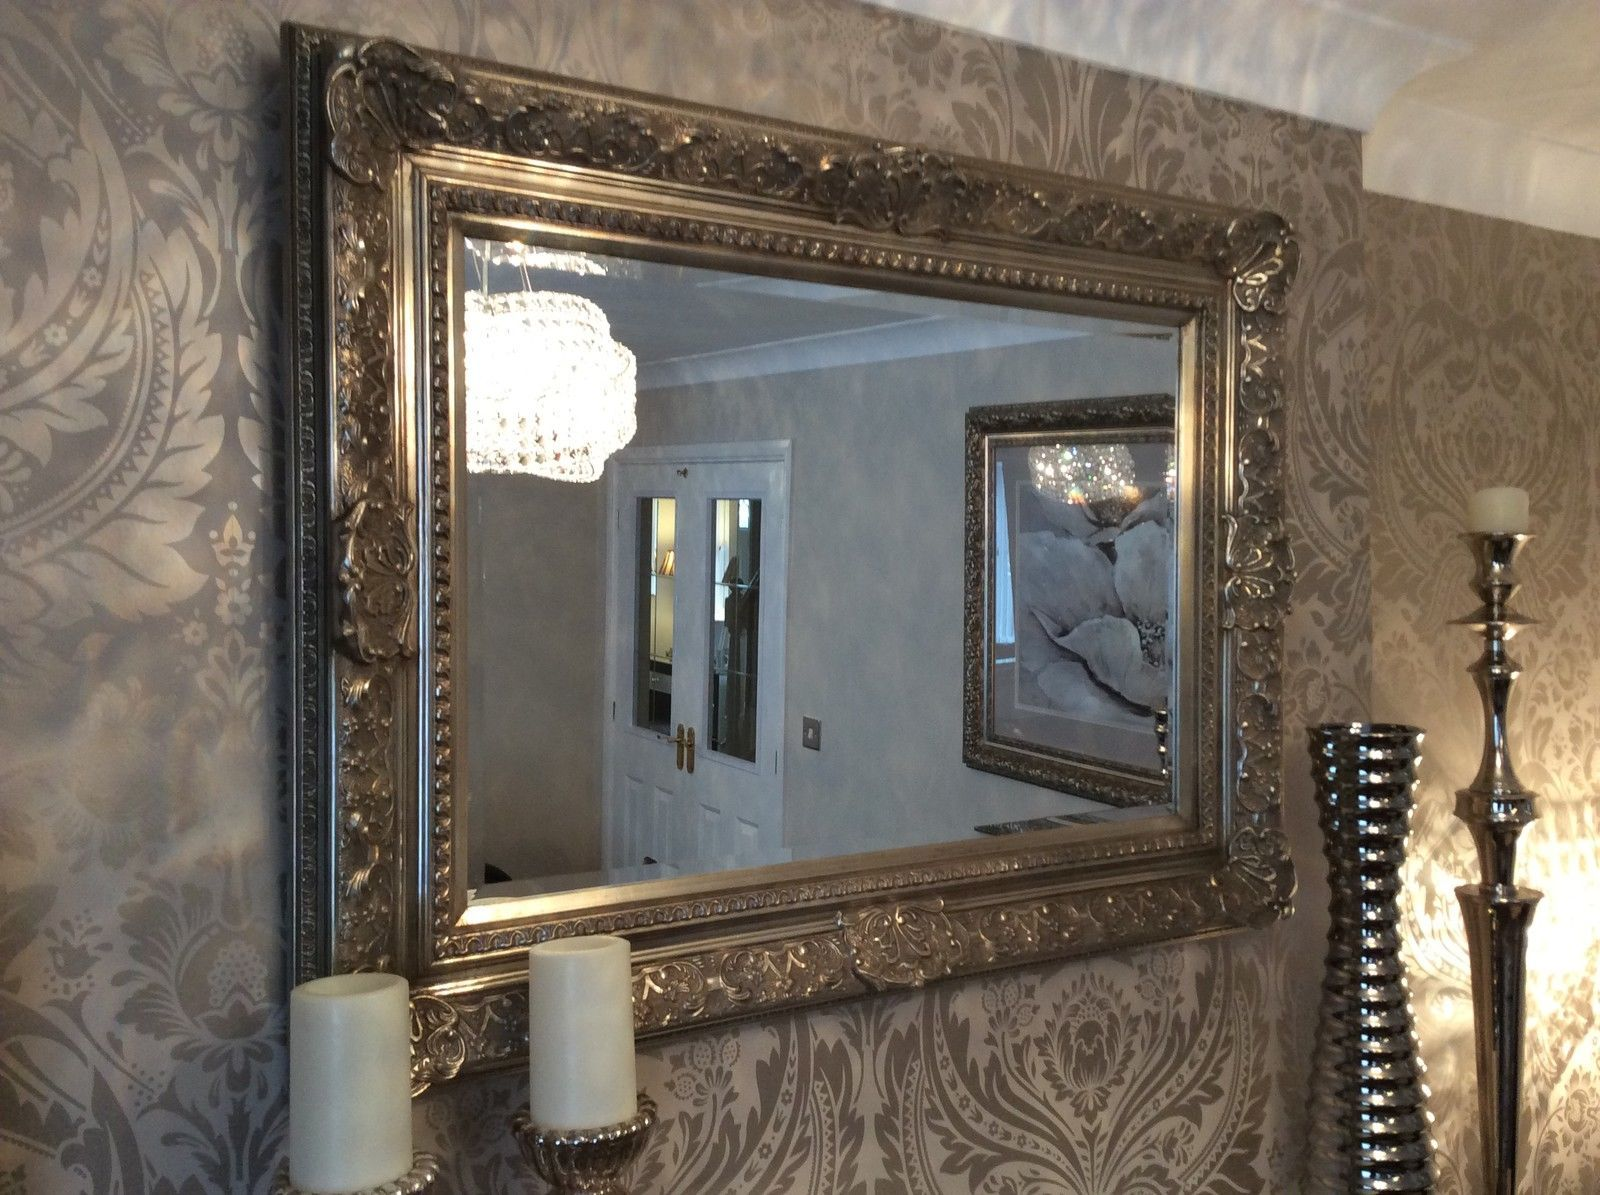 5 Inch Wide Frame Wall Mirror Full Range Of Sizes And